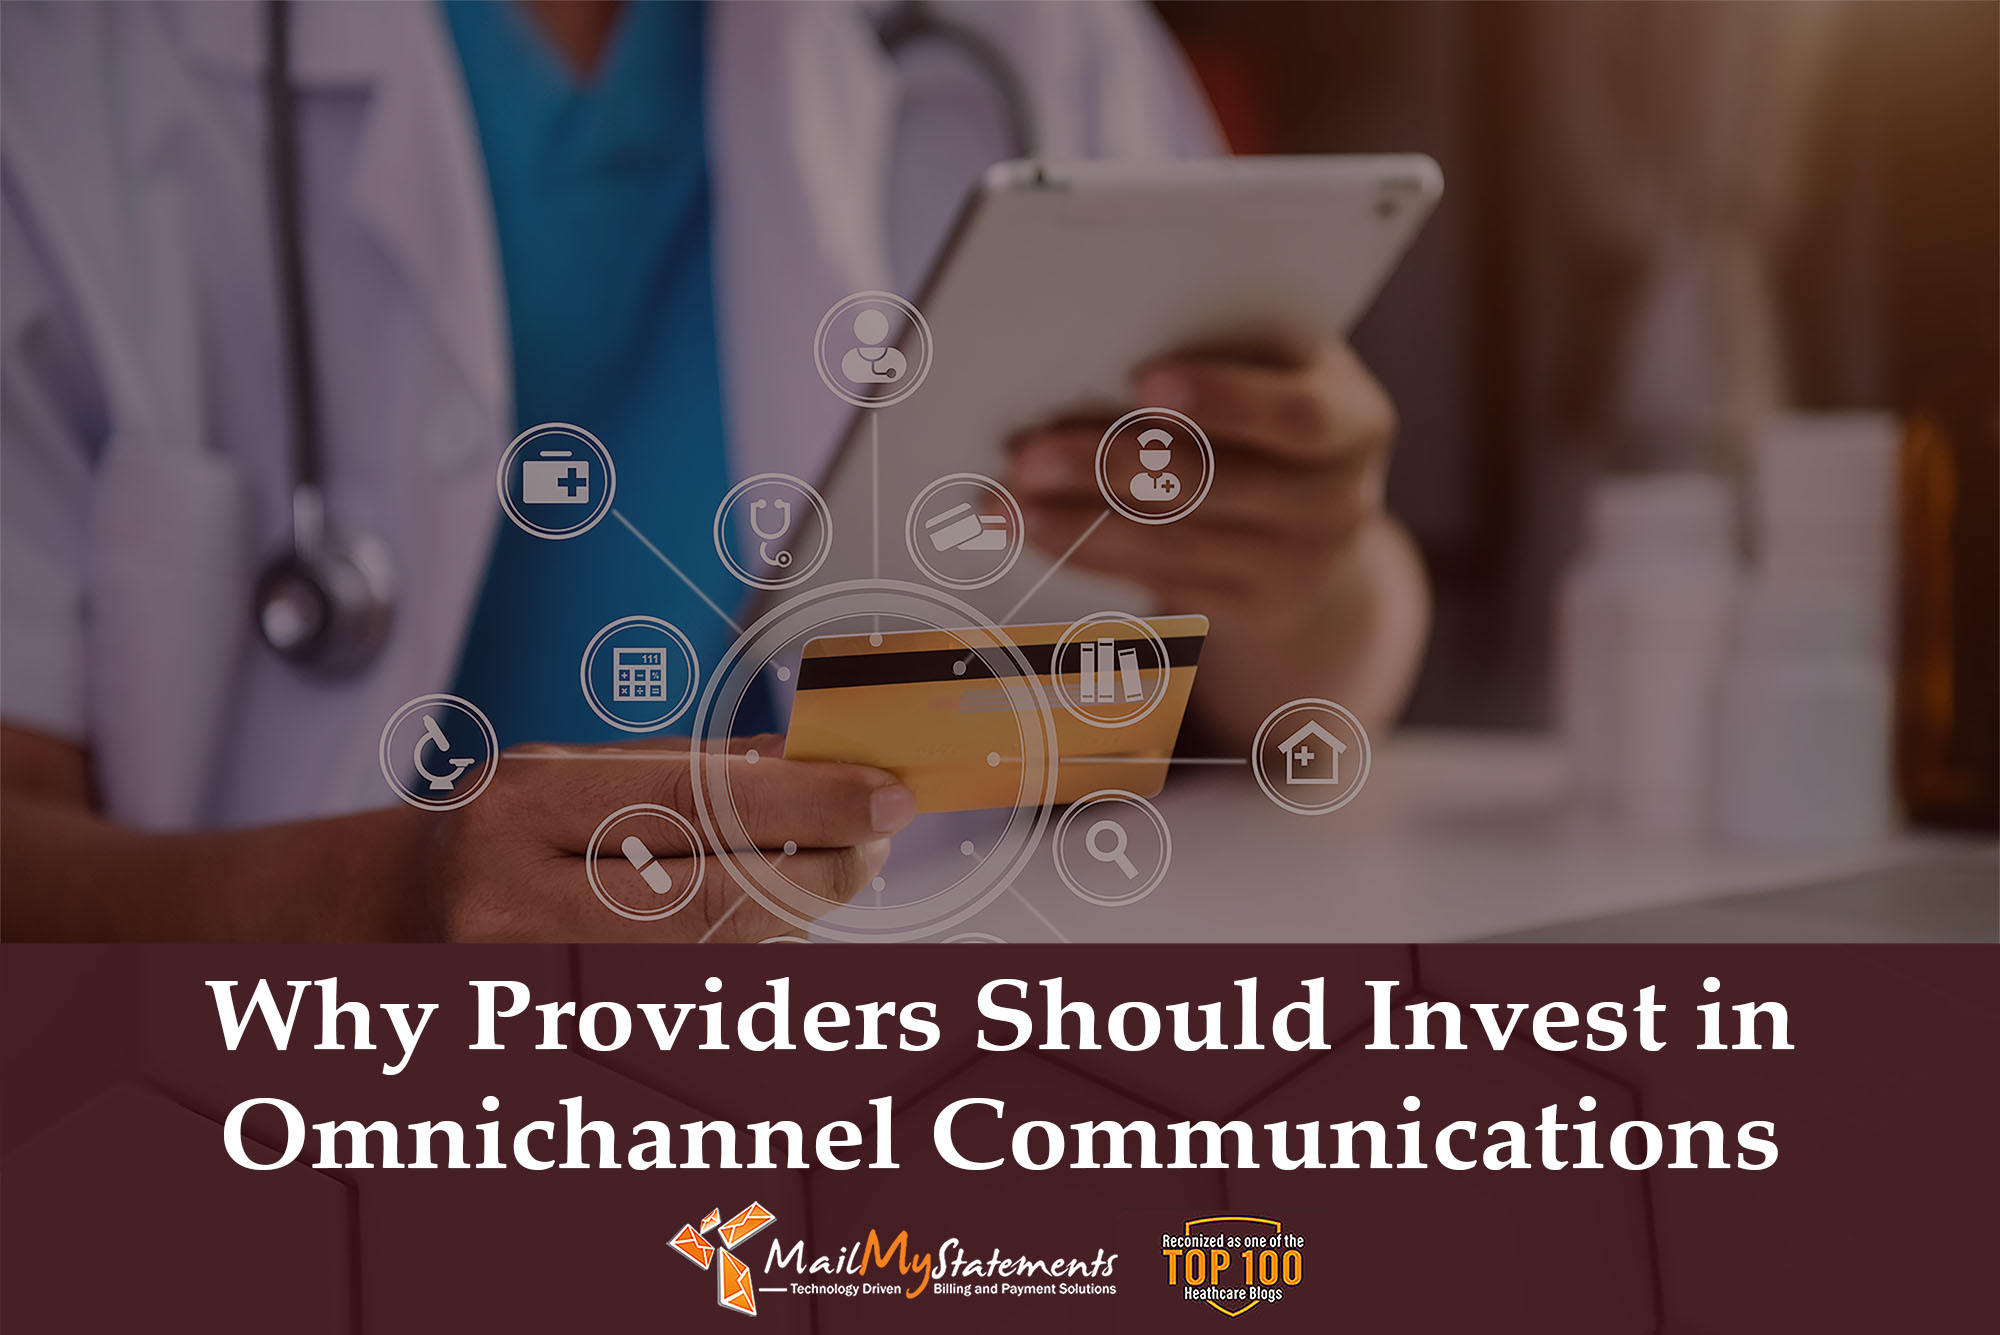 Why Providers Should Invest in Omnichannel Communications